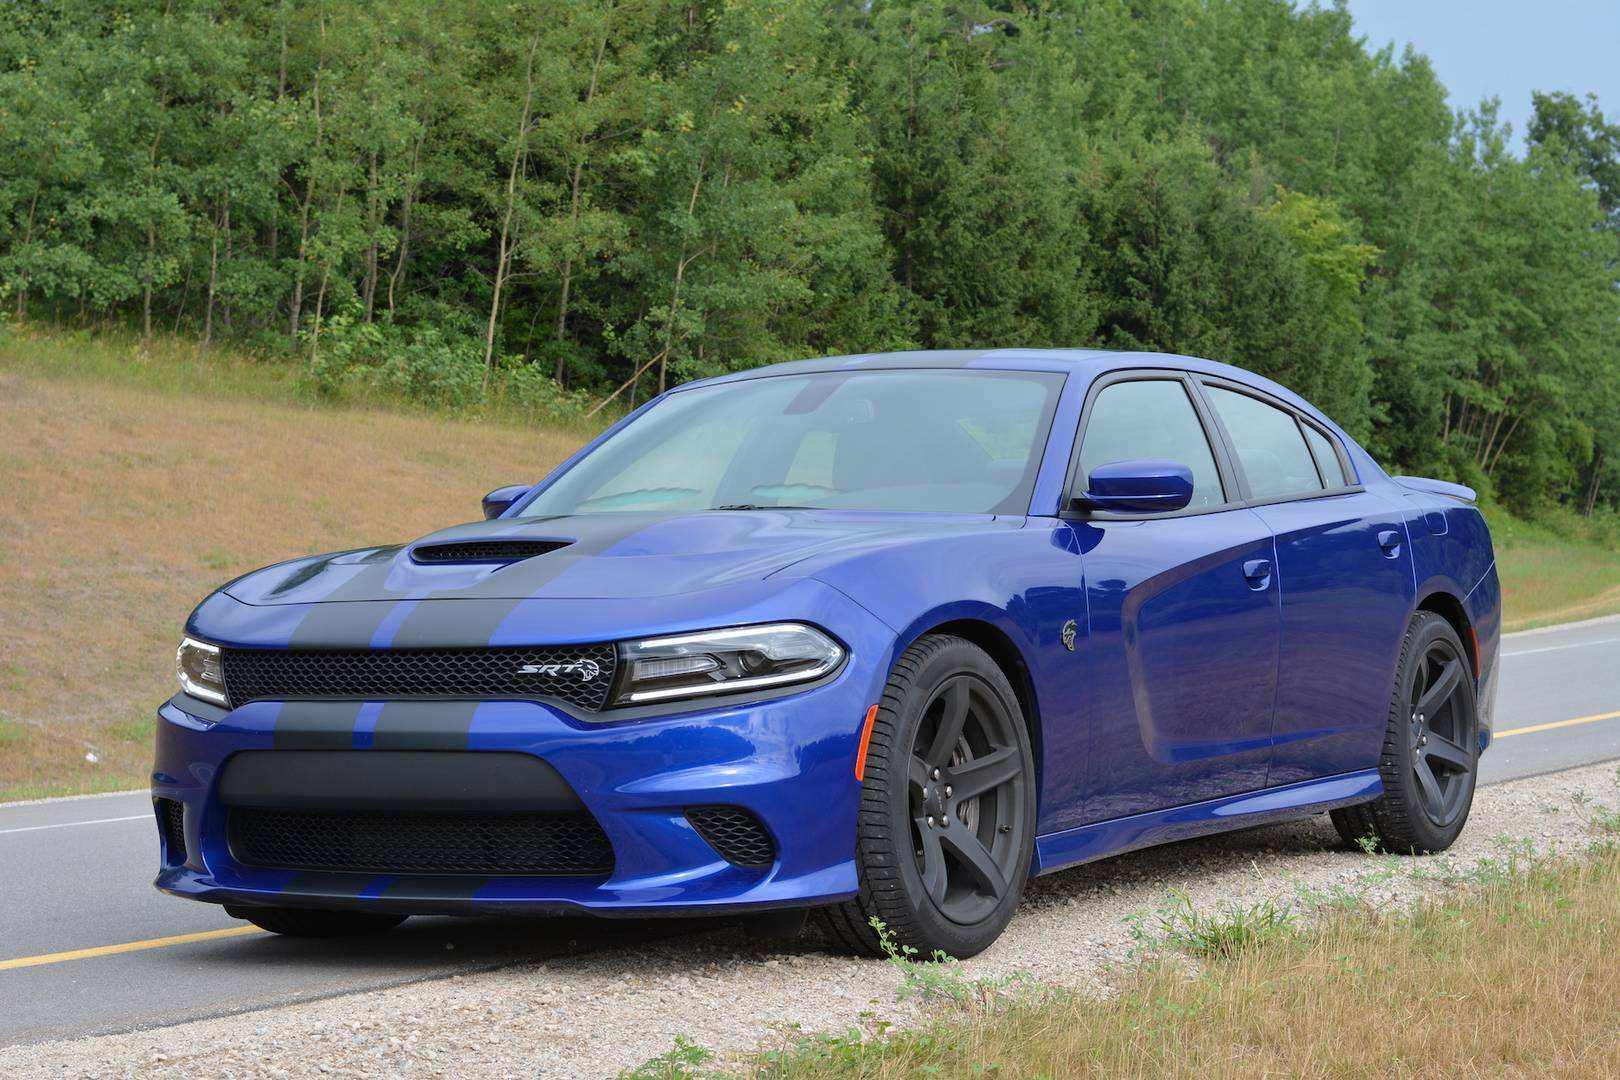 65 All New 2019 Dodge Charger Spy Shoot